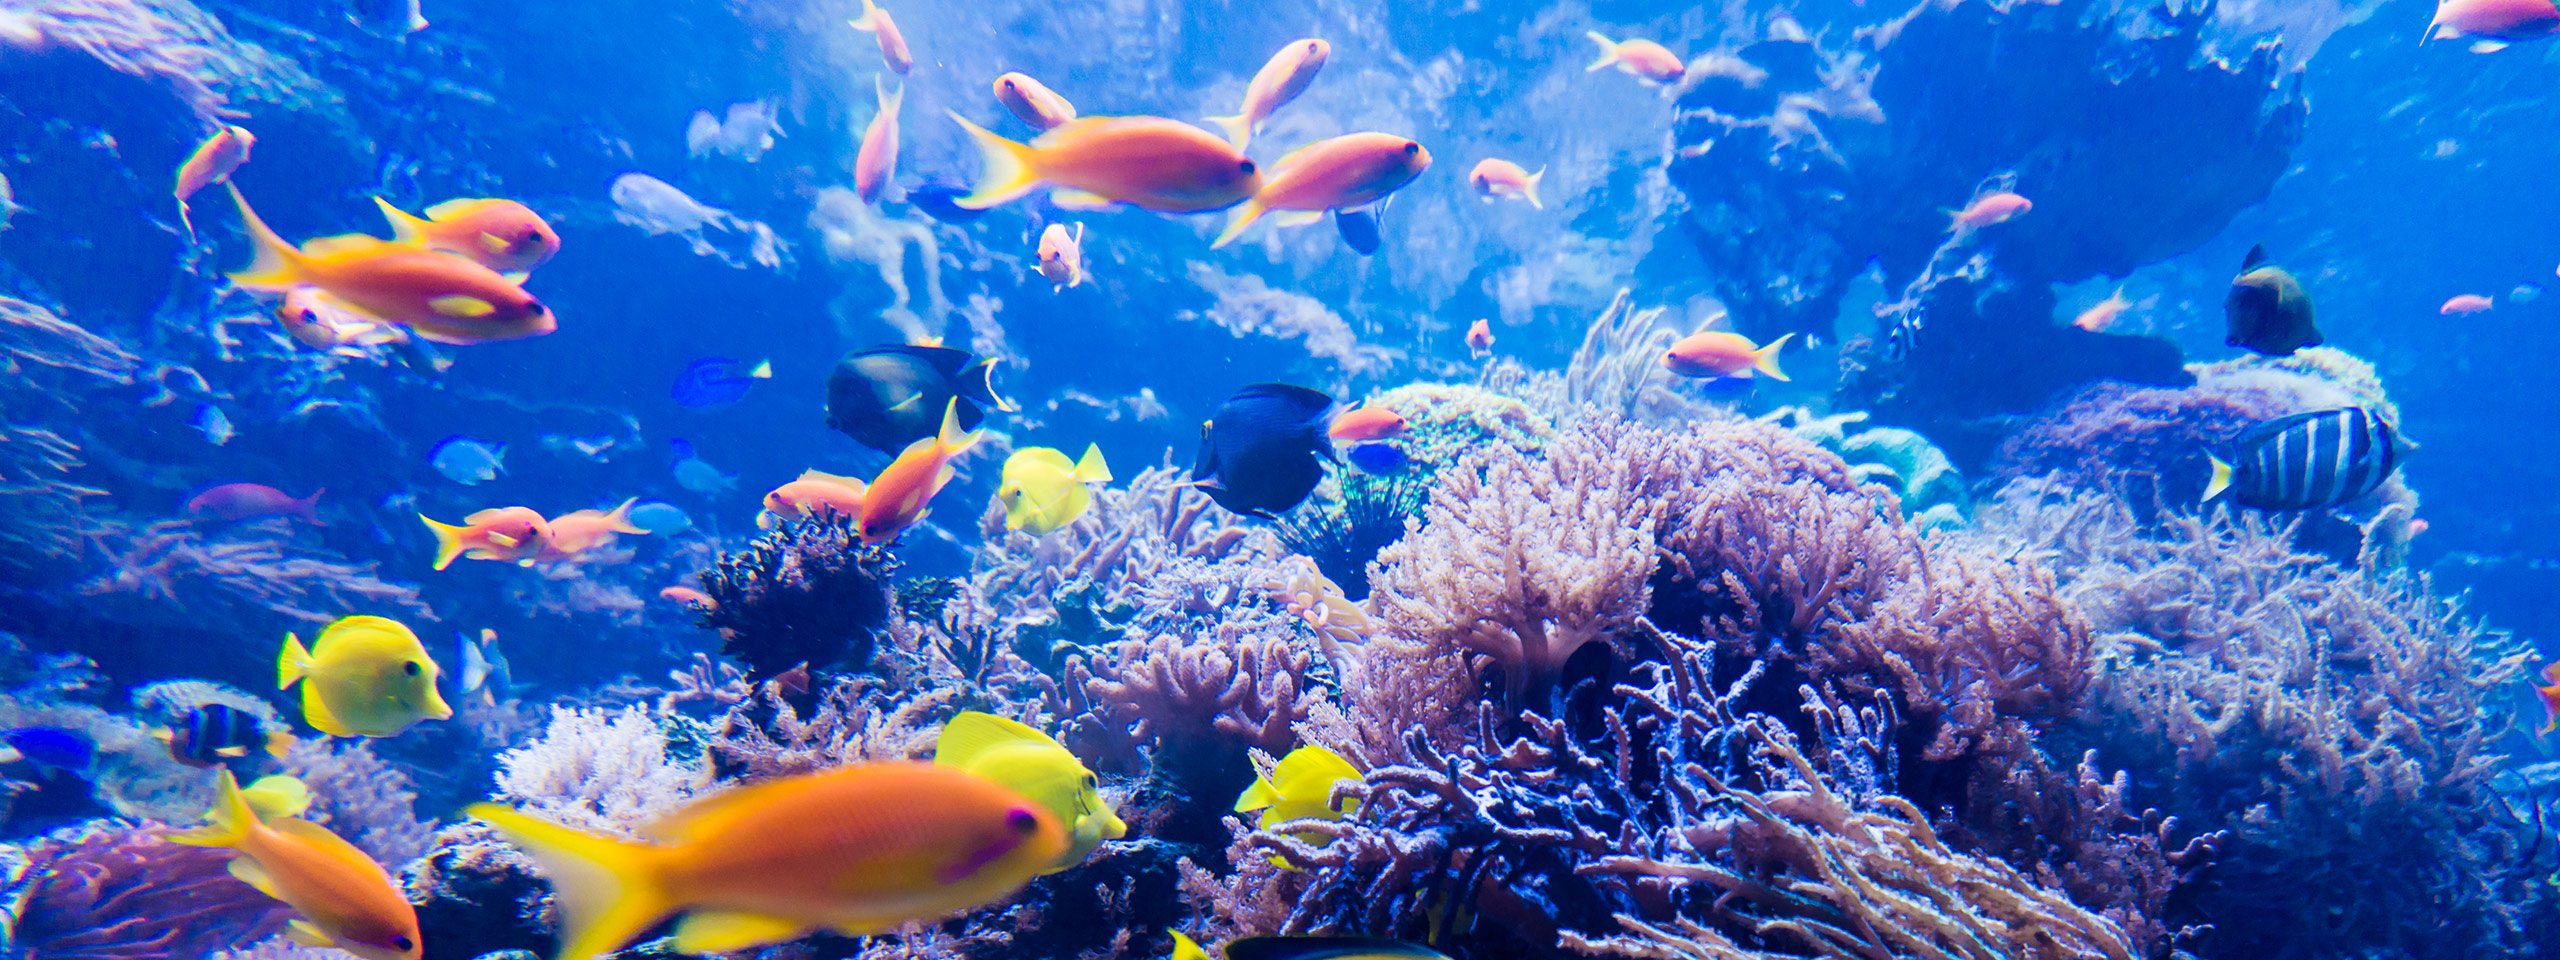 Colourful Fish and Coral, Great Barrier Reef